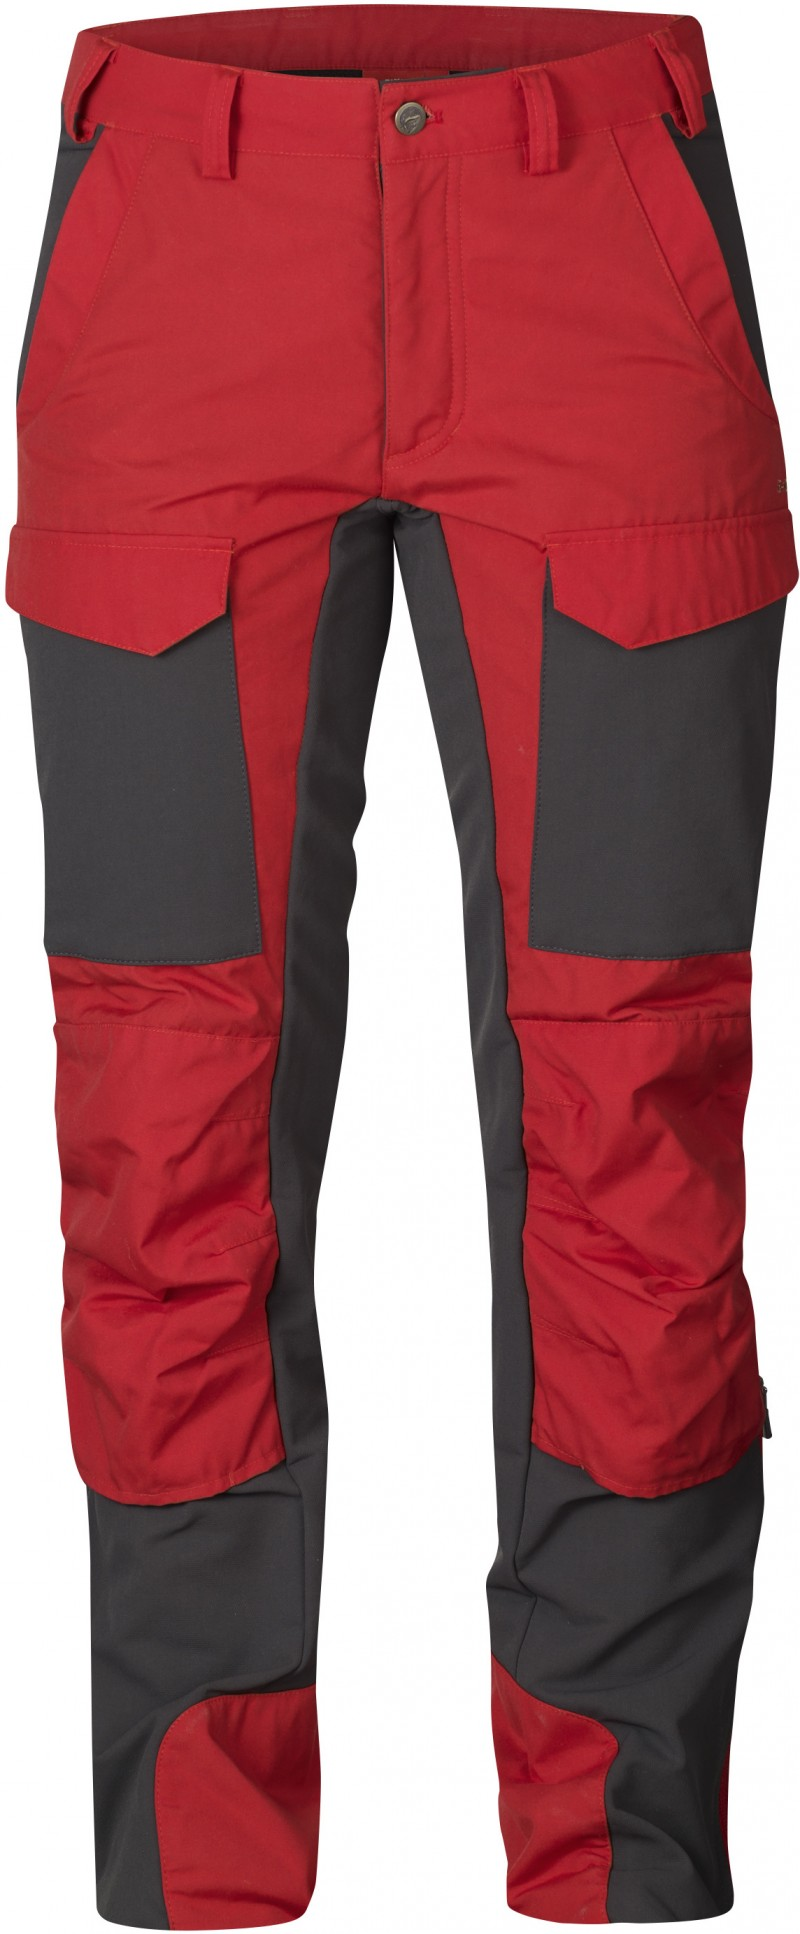 FjallRaven Skare Trousers W. Red-30